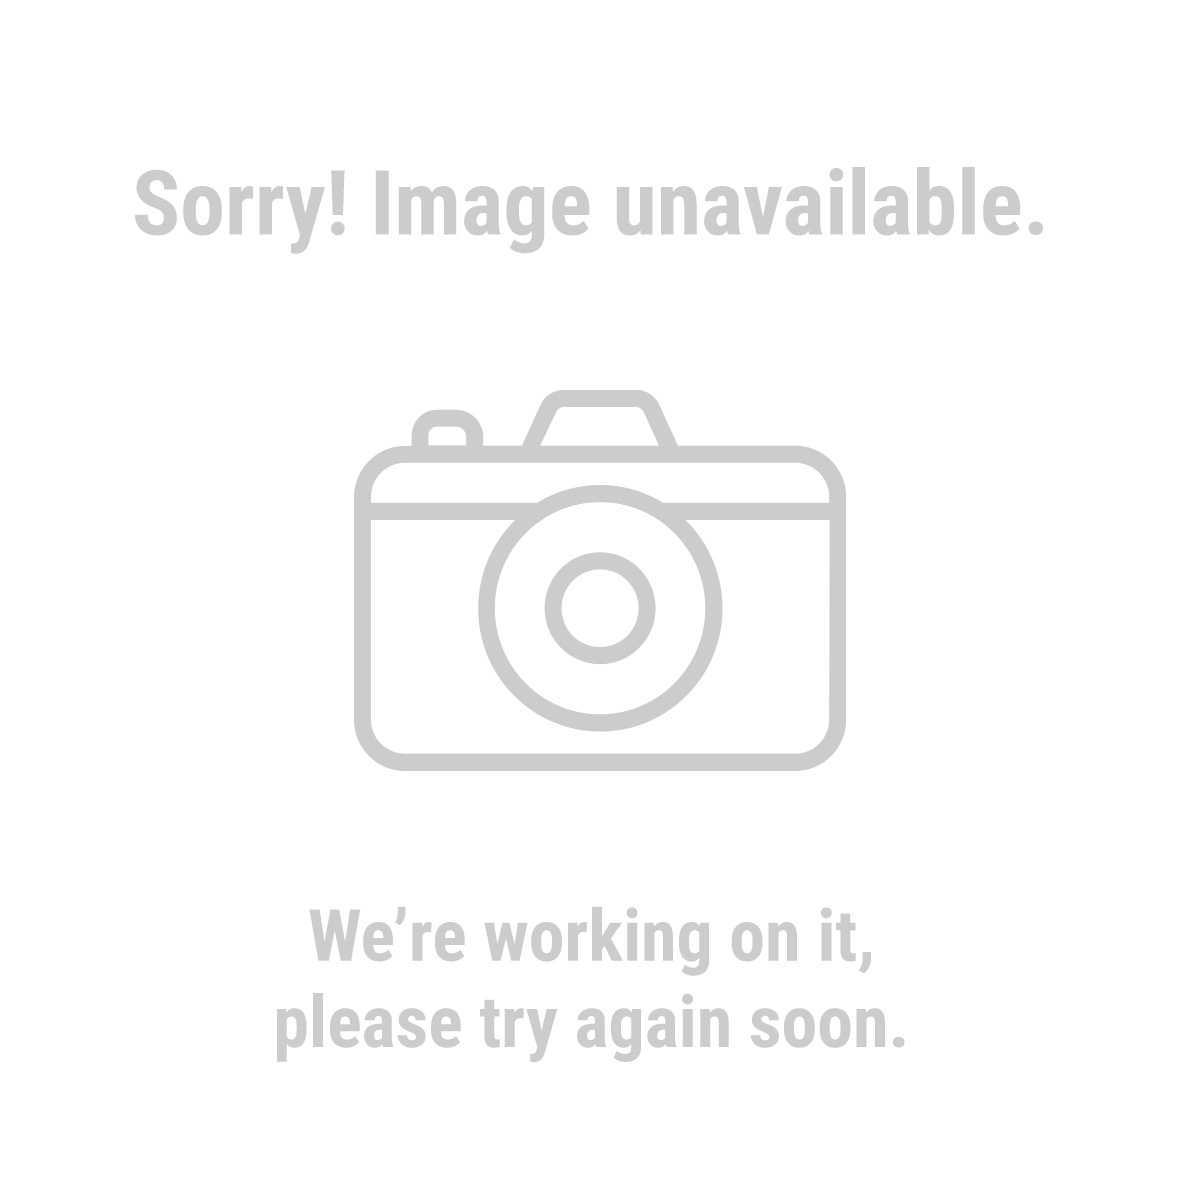 Pittsburgh 60826 6 Piece Precision Pliers Set